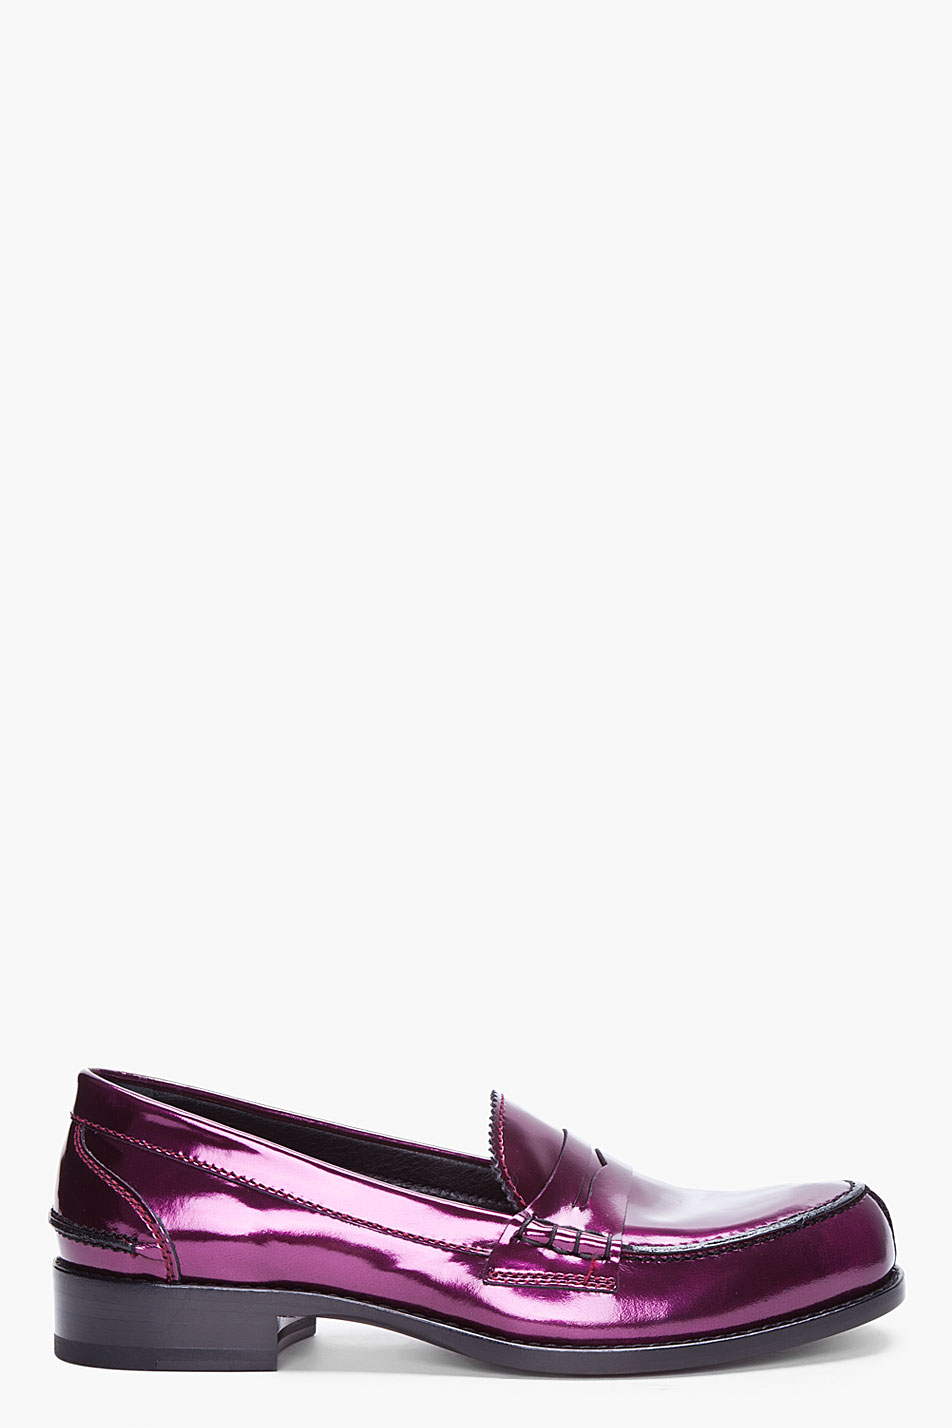 Lyst Jil Sander Mirto Metallic Leather Penny Loafers In